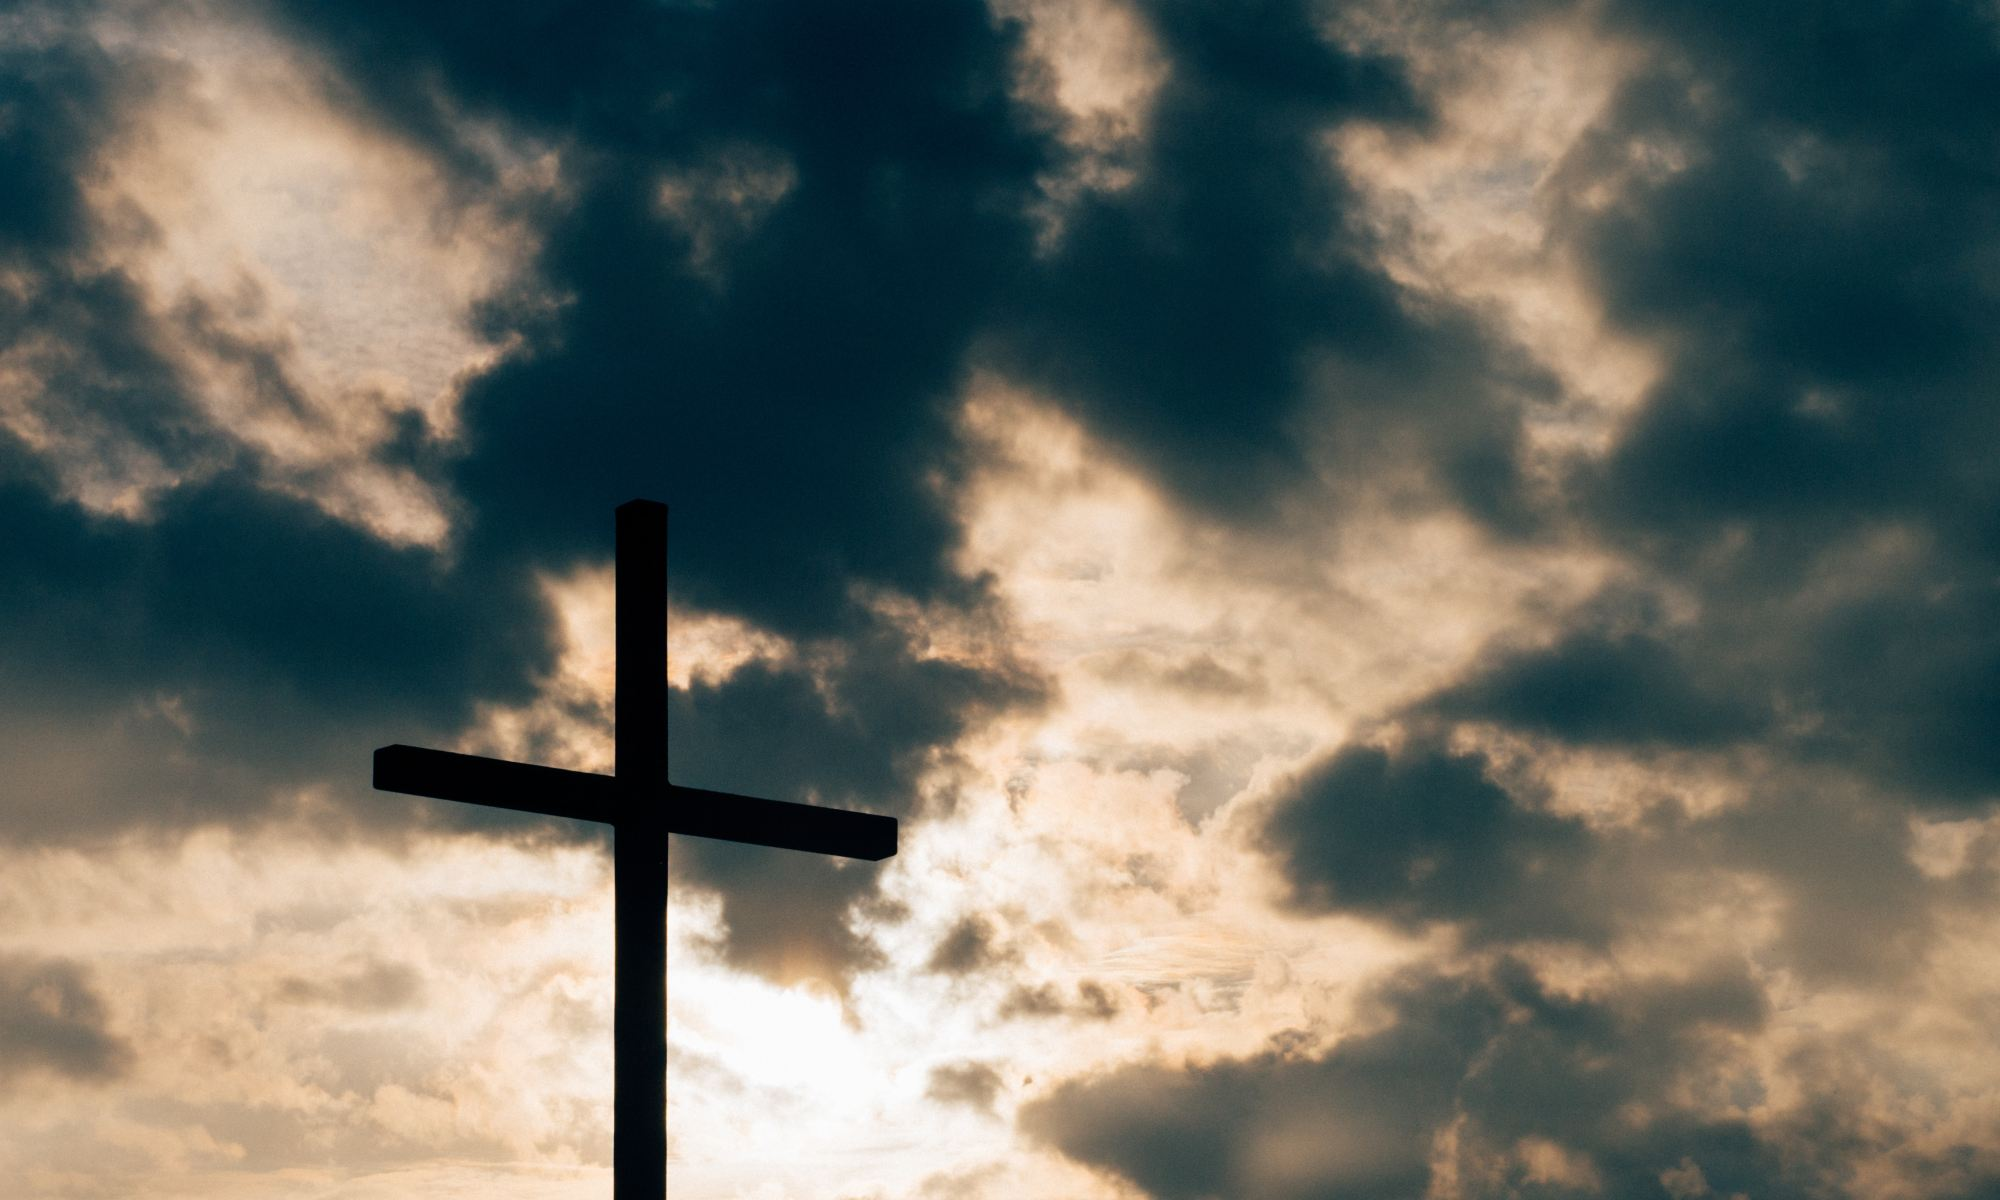 Silhouette of cross under dark clouds